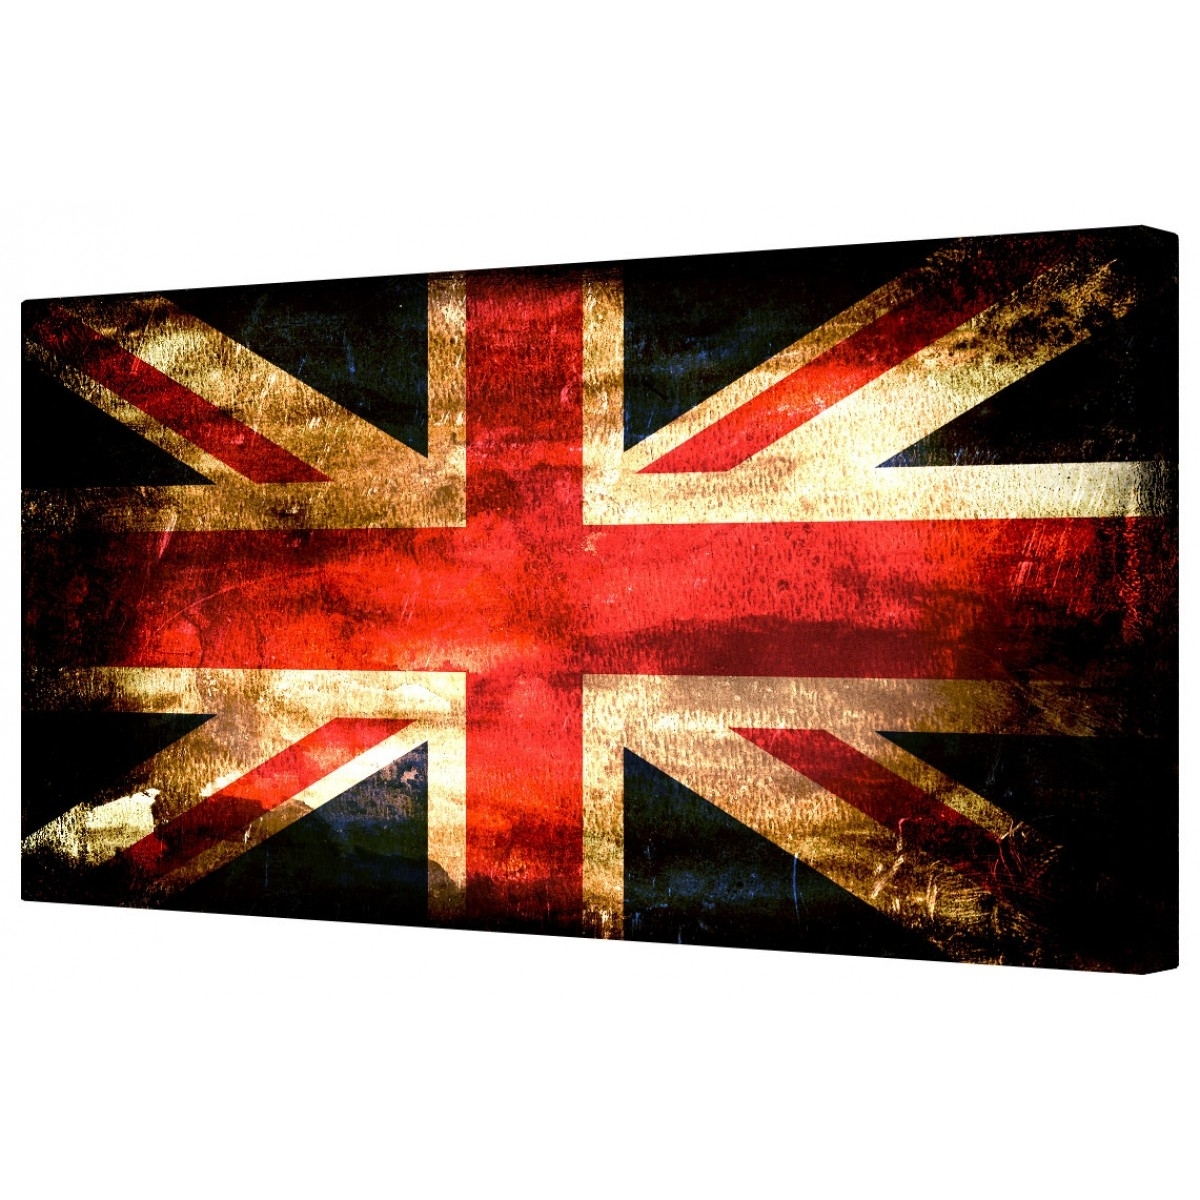 Canvart | Retro Union Jack Flag Framed Canvas Wall Art Picture Regarding Most Up To Date Union Jack Canvas Wall Art (View 6 of 15)